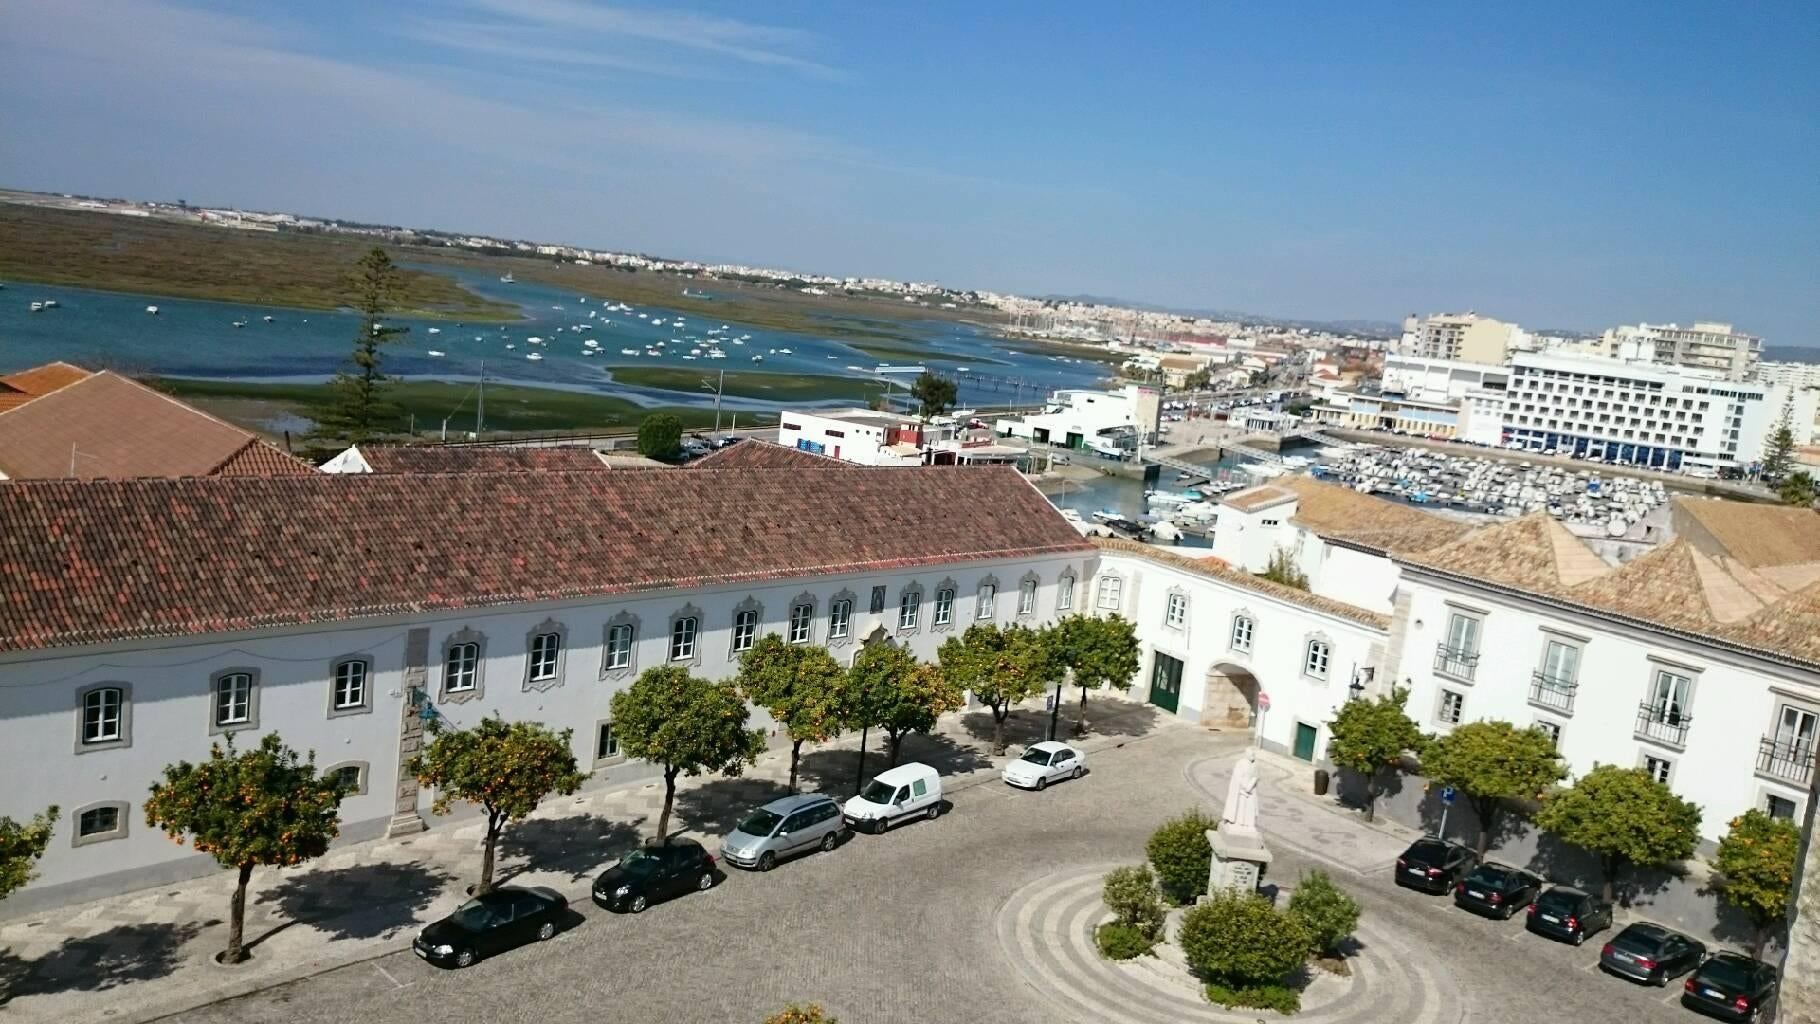 Resort en Catedral de Faro